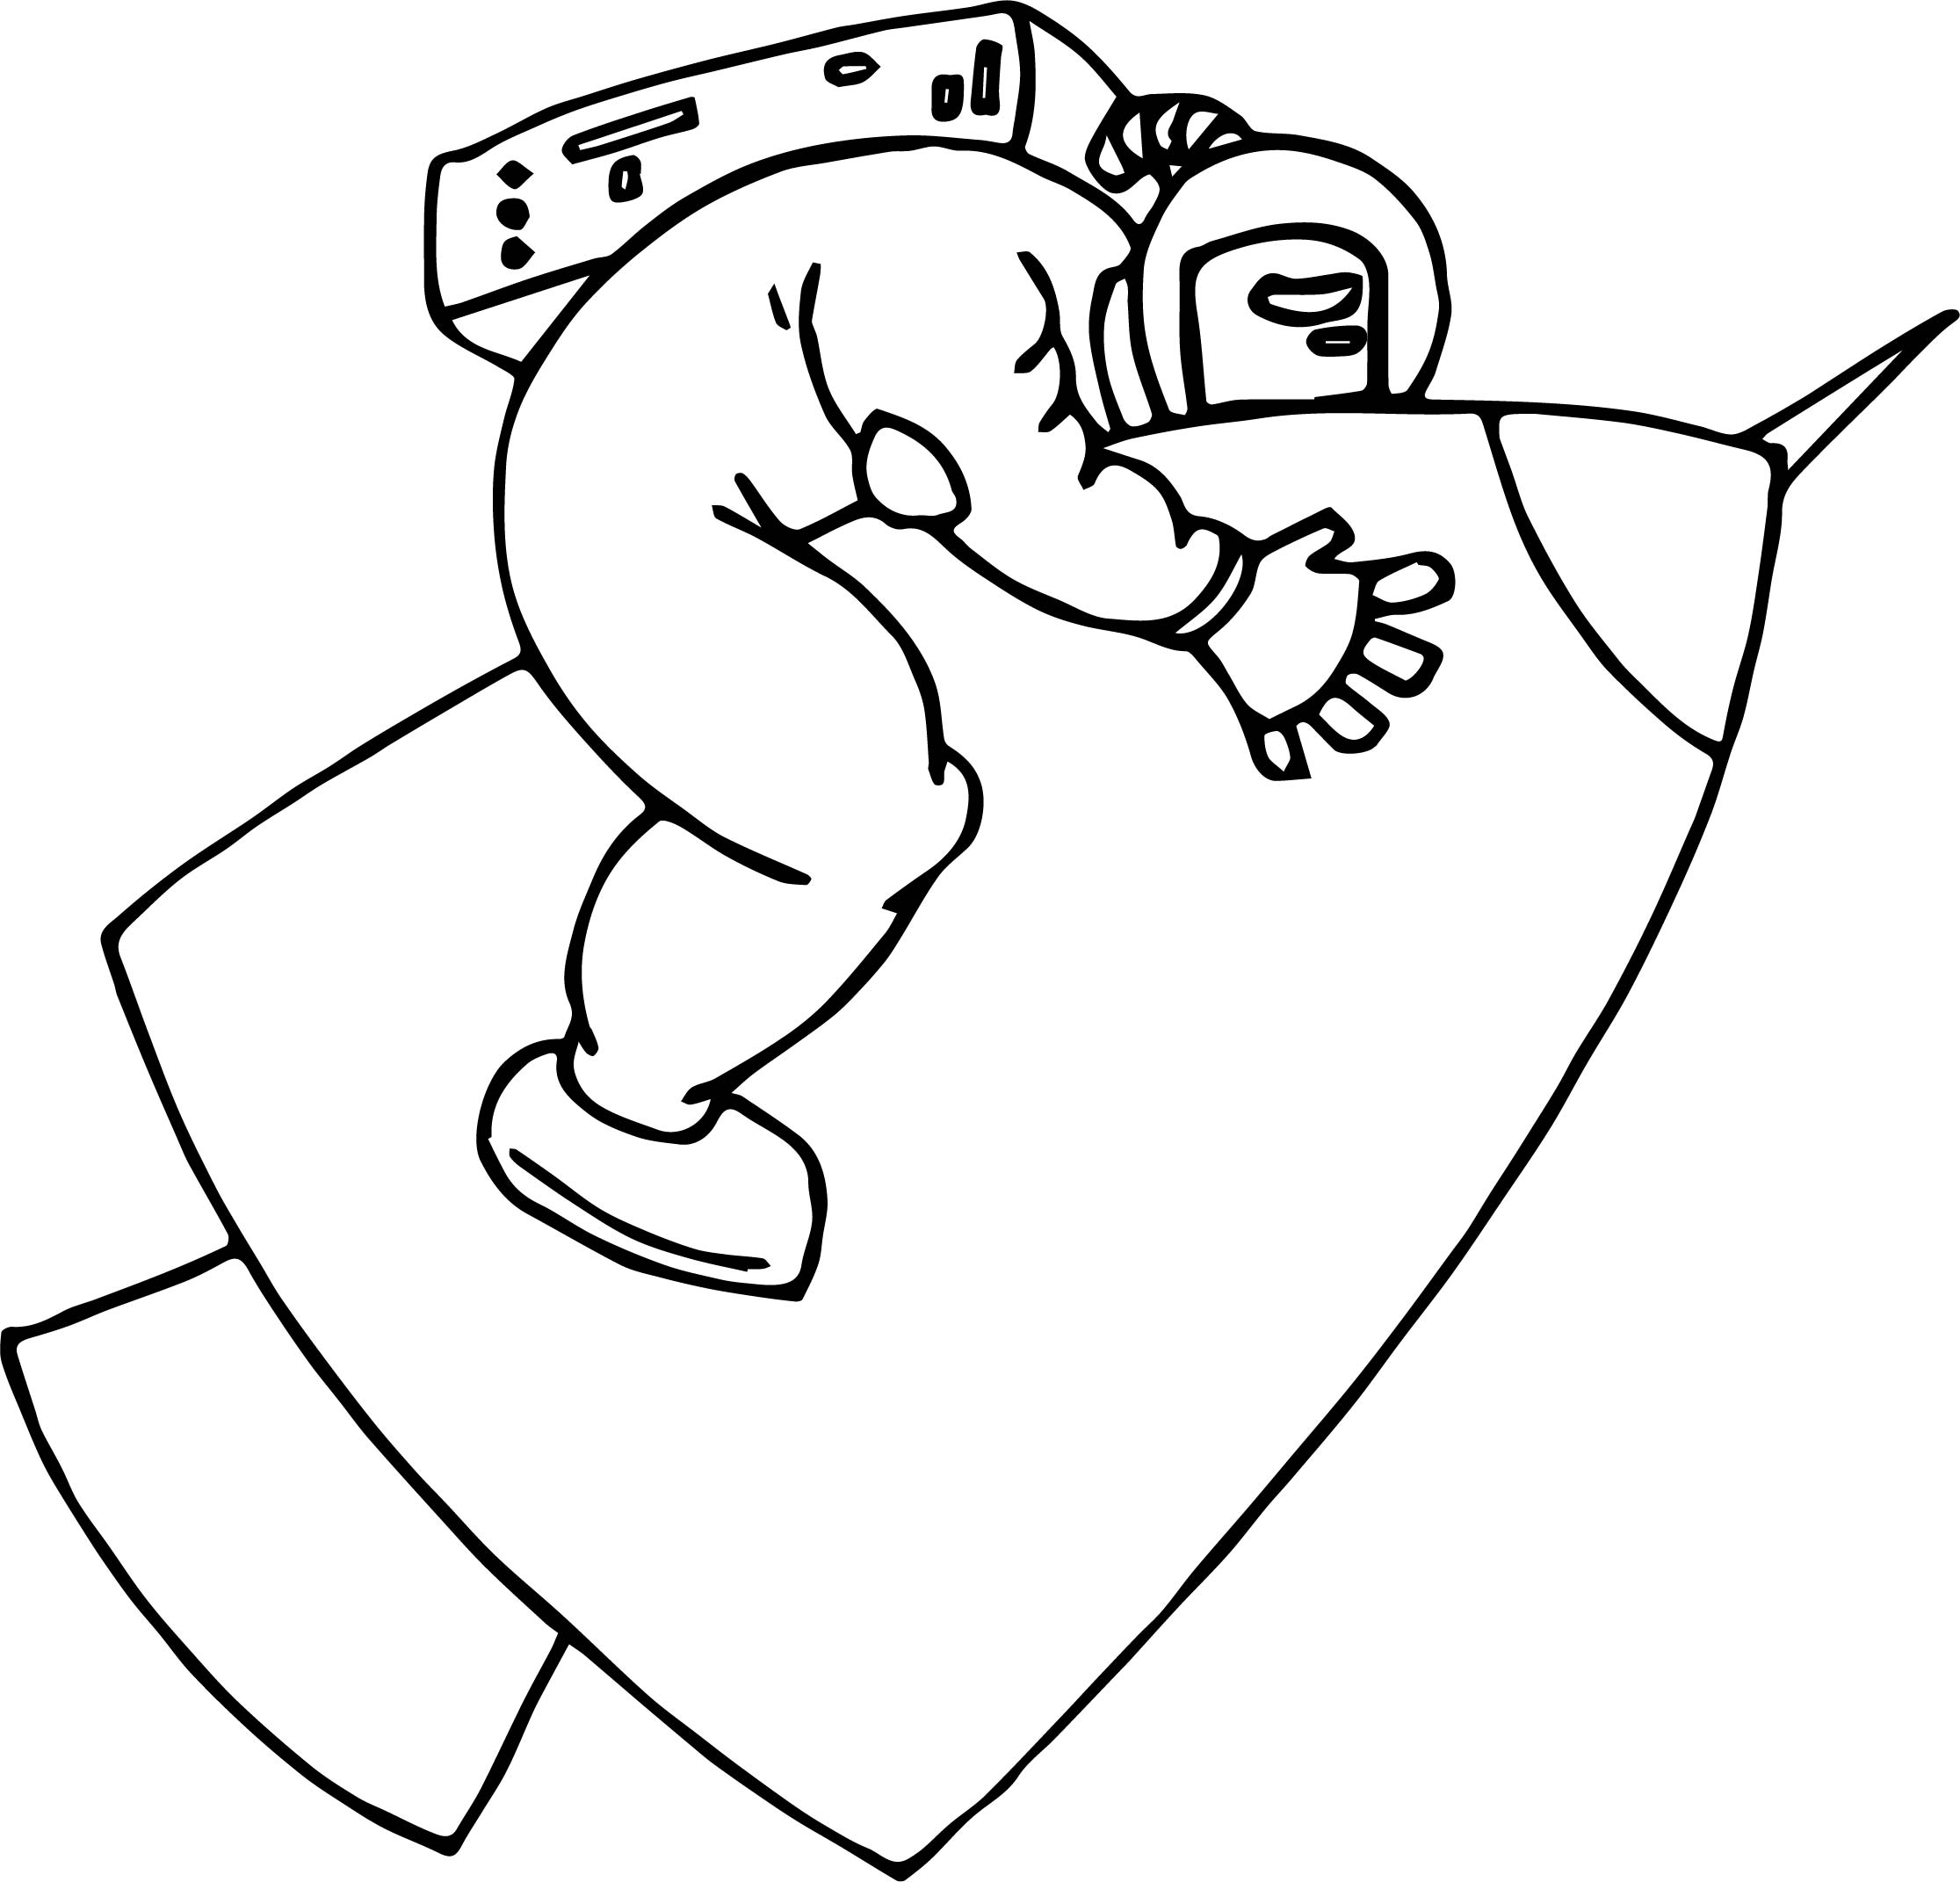 Astronaut Hard Fly Coloring Page